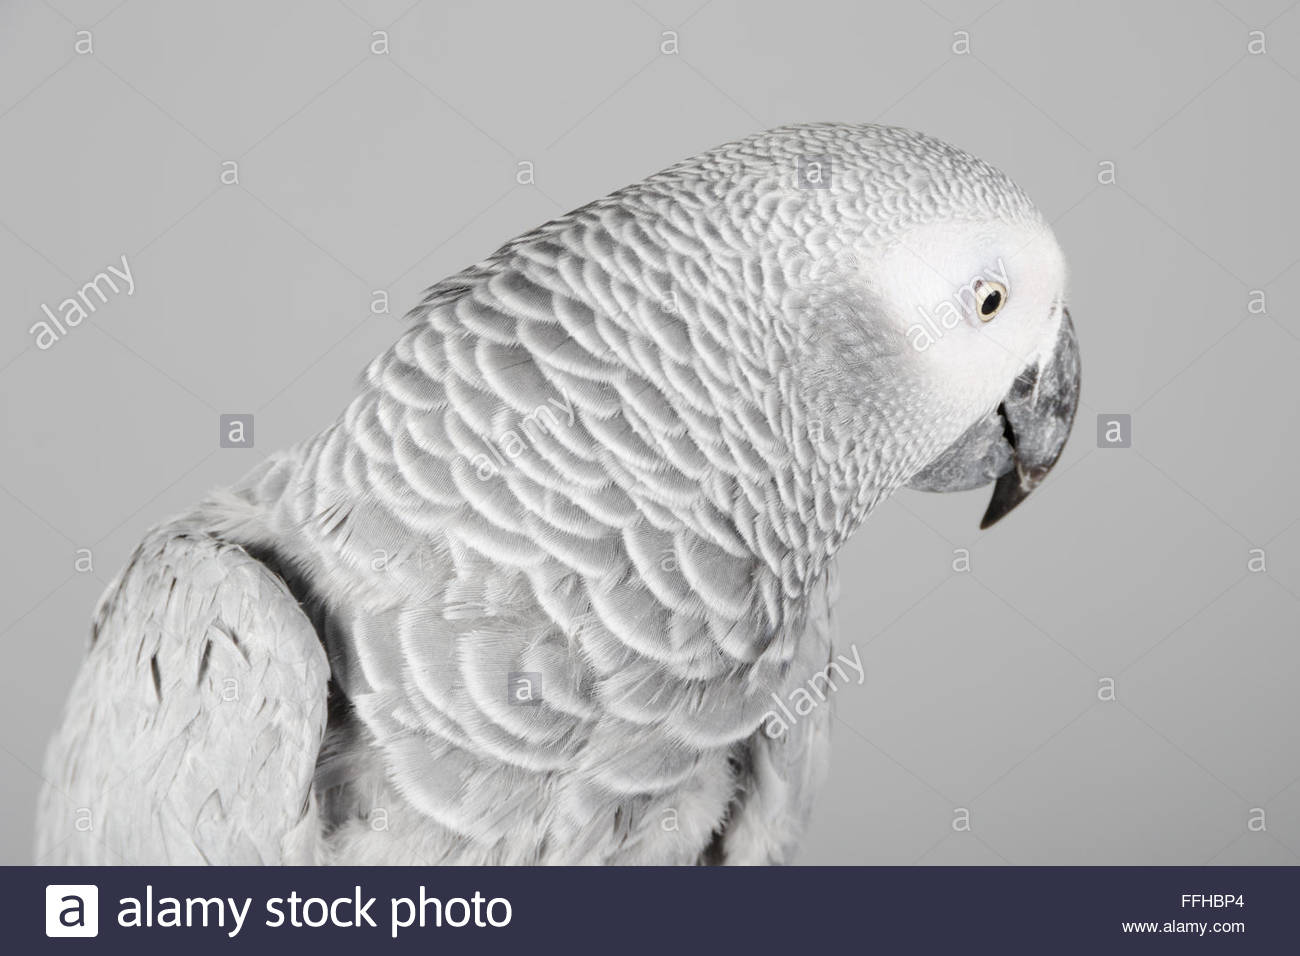 Female African grey parrot called Lola. - Stock Image